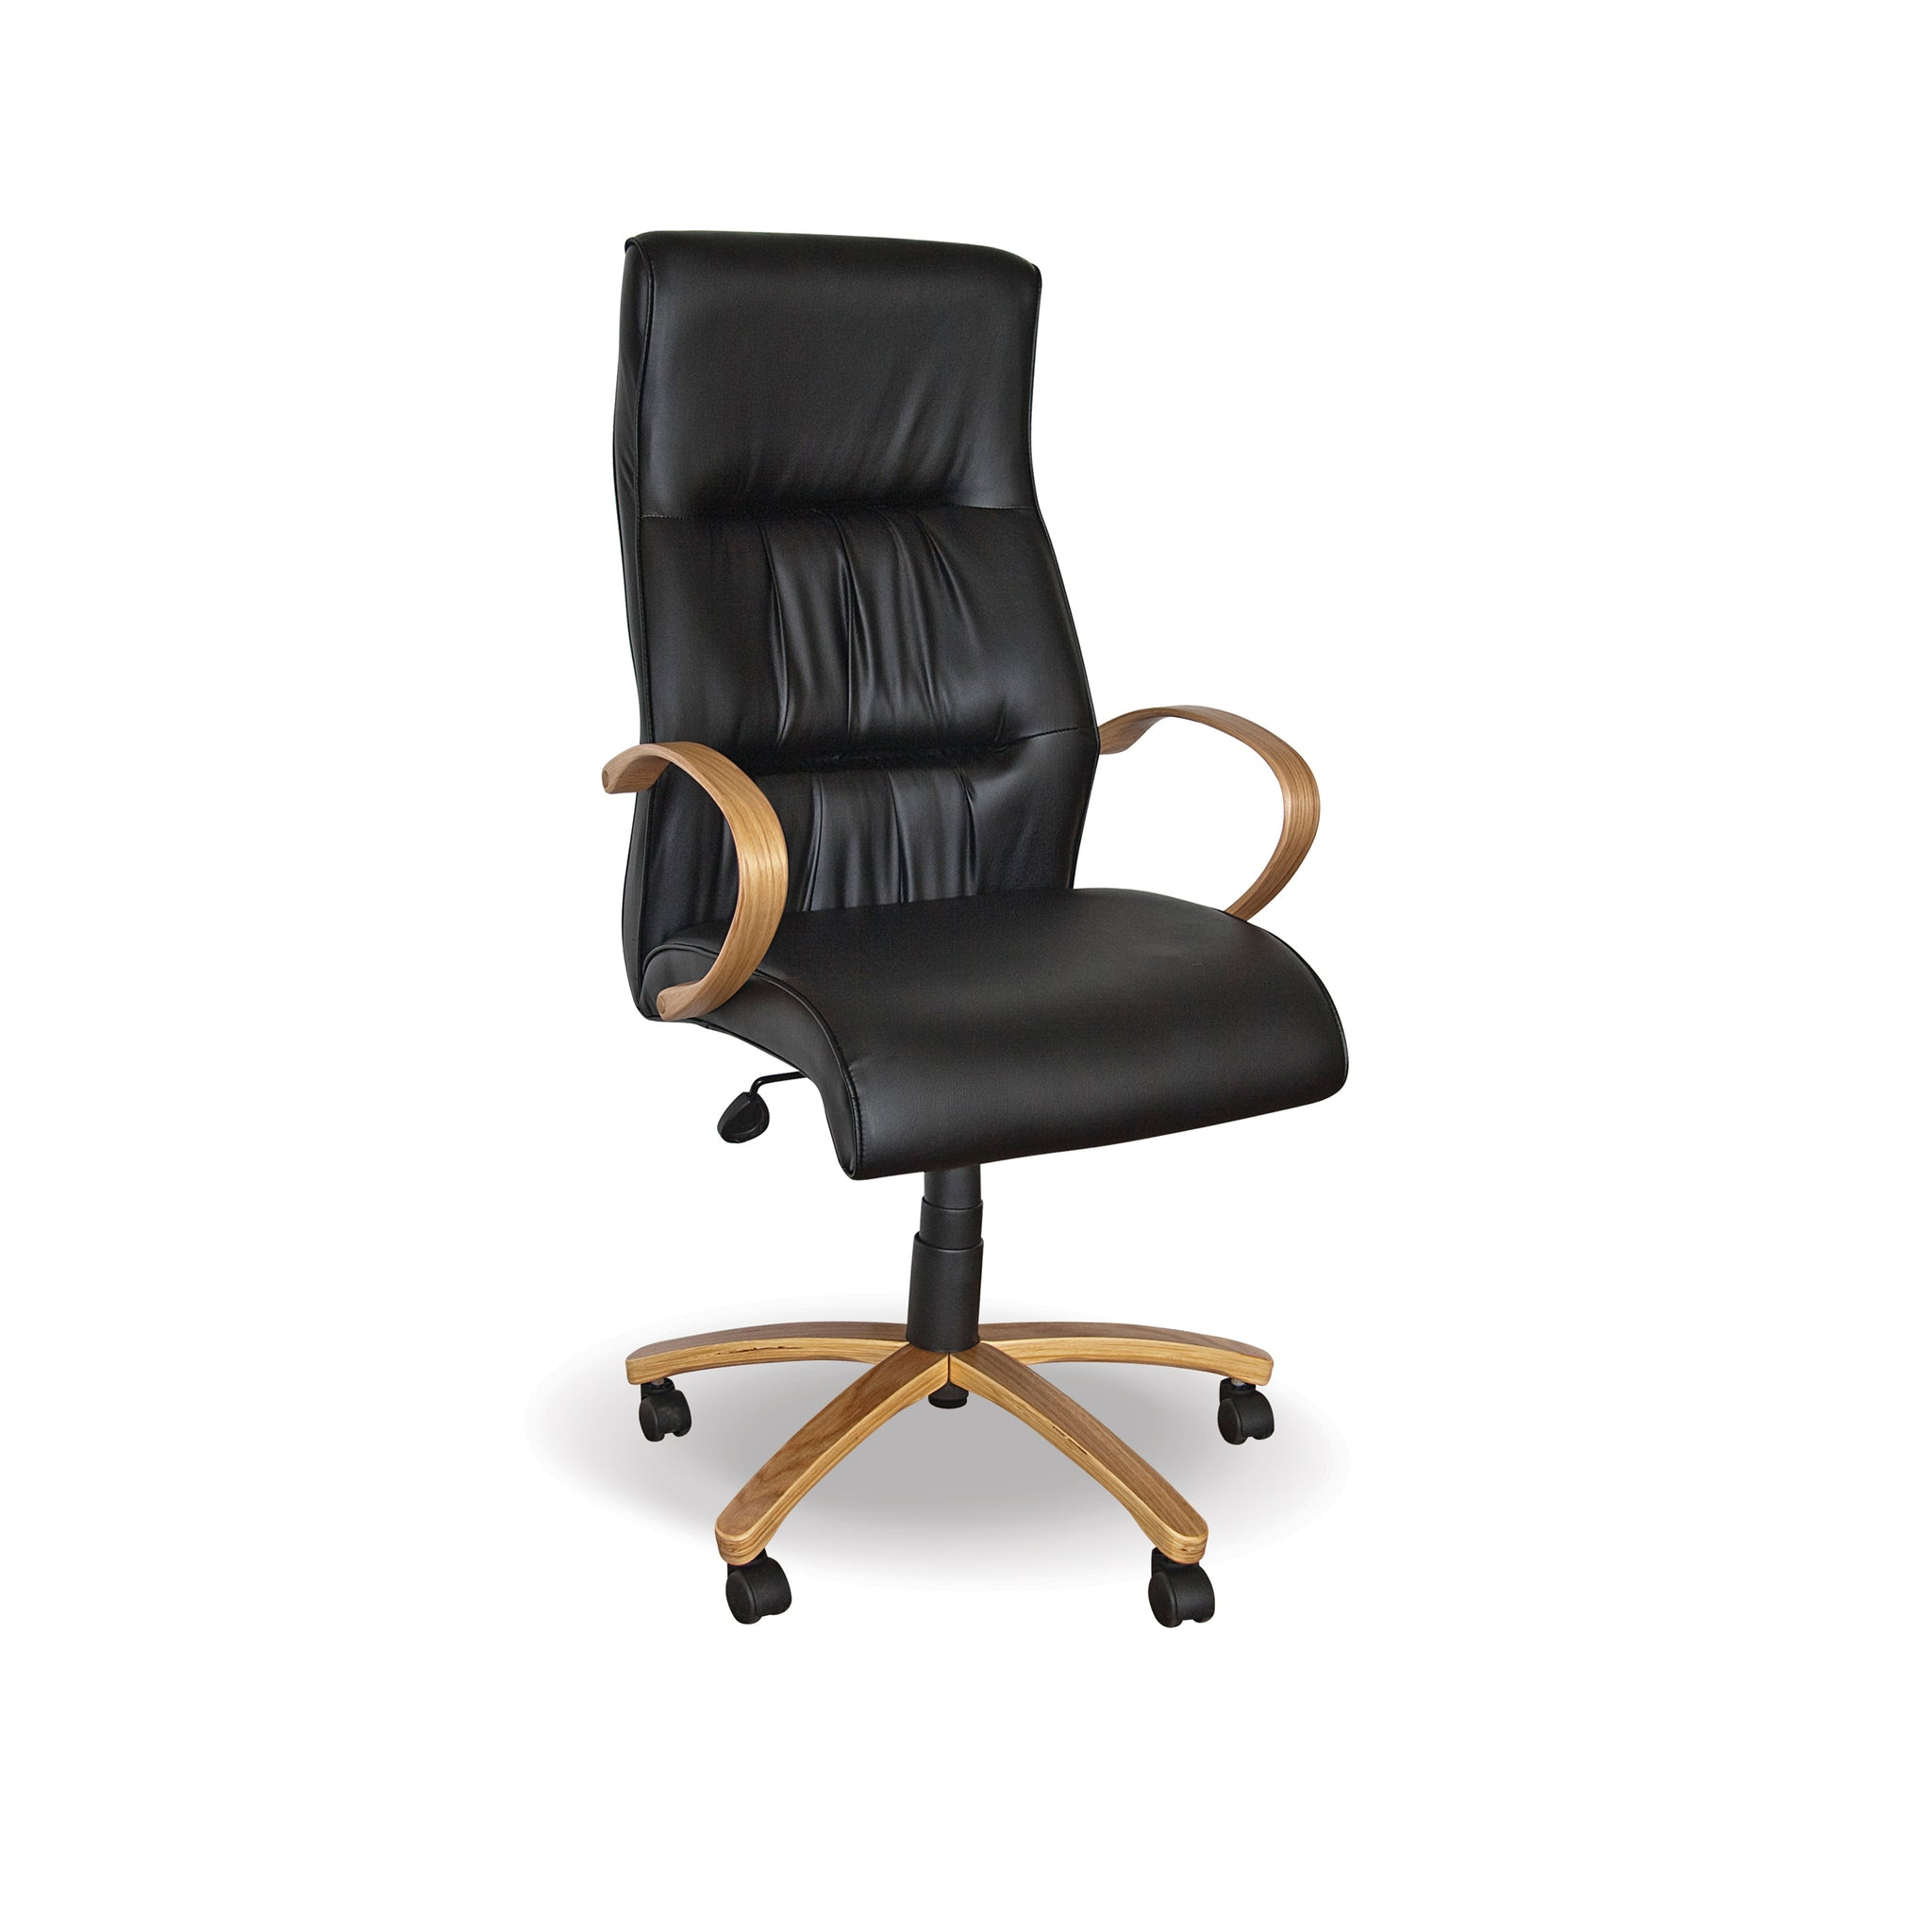 Hedcor Salvador high back office chair